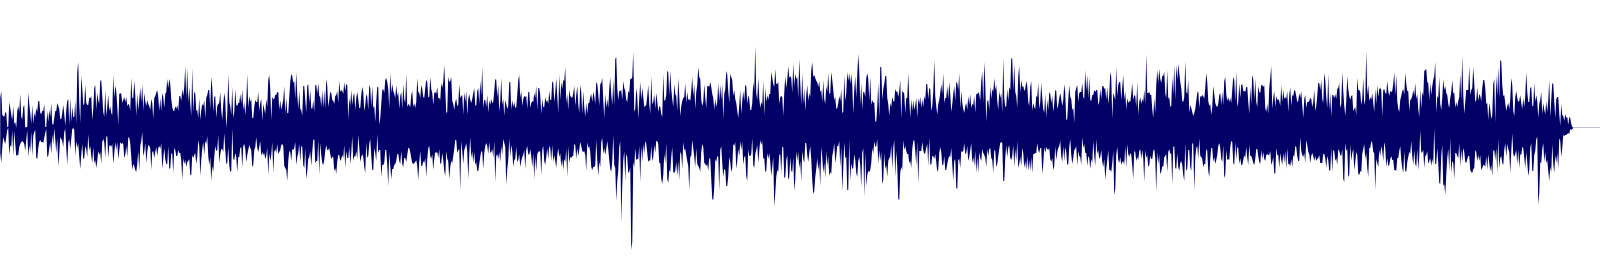 waveform of track #136602